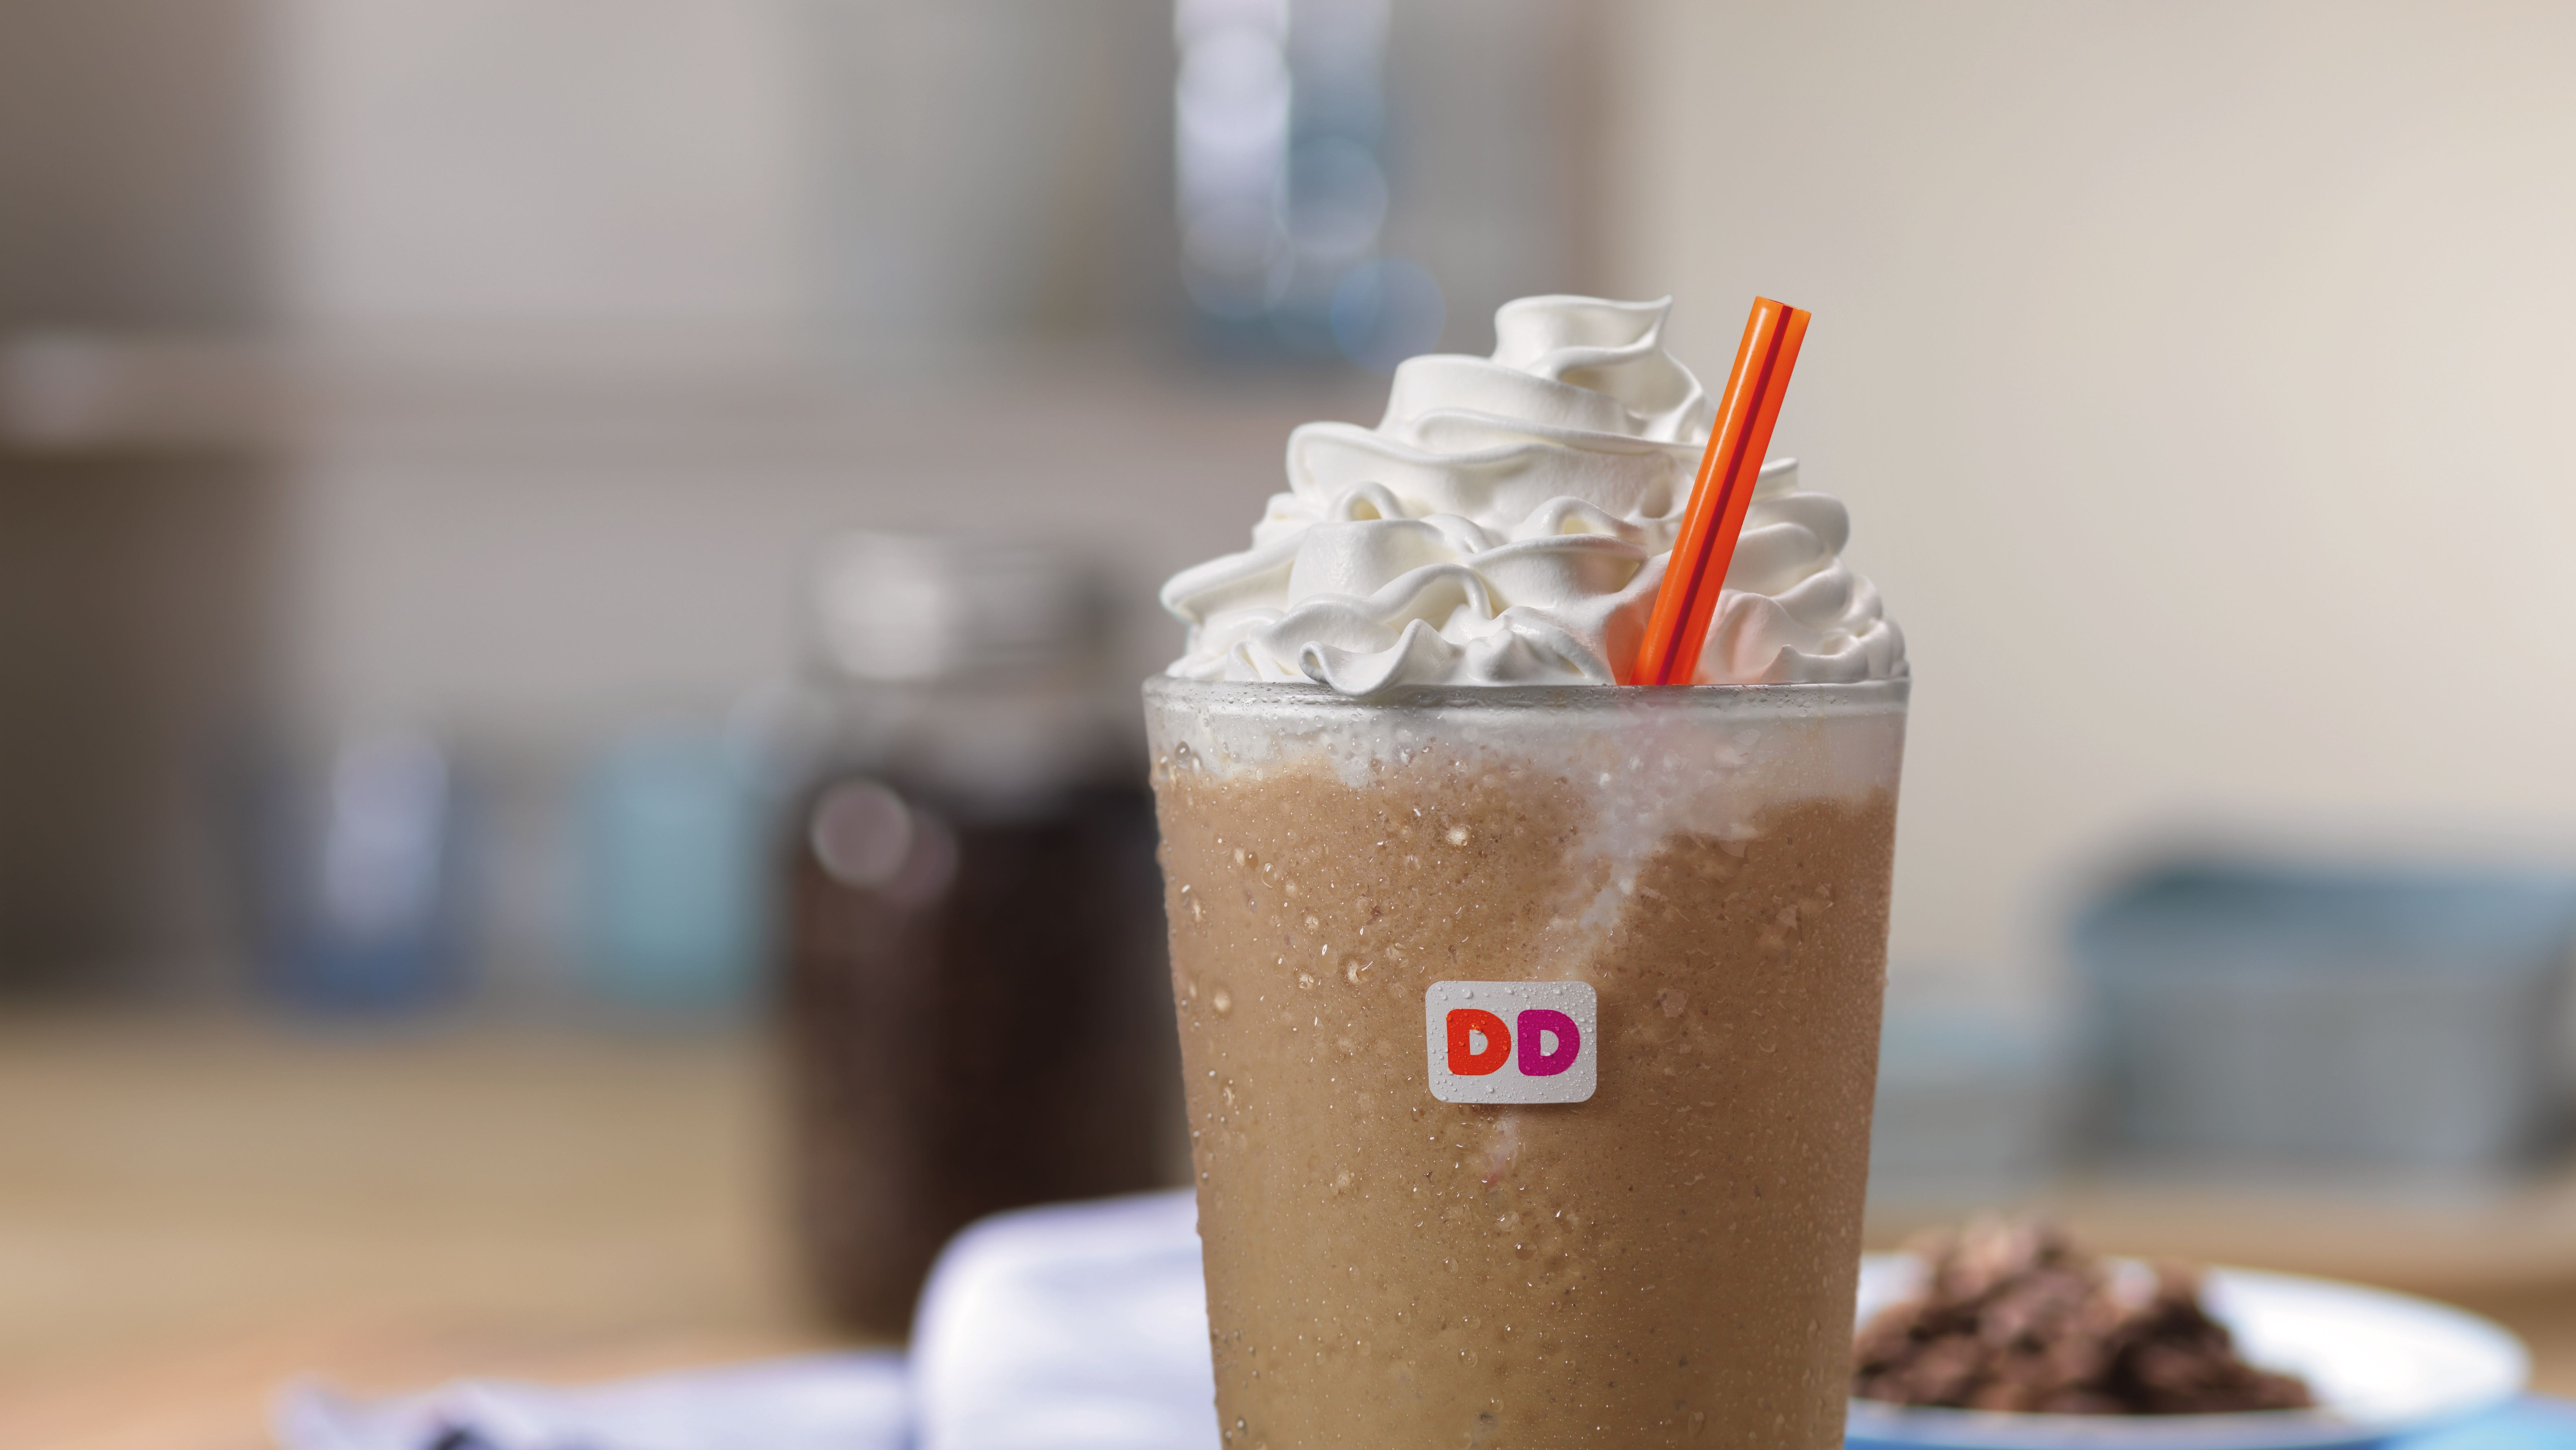 dunkin donuts 4 p s I wanted to share an idea with you that dunkin donuts implemented last  4  whenever you need to send out the coupon to redeem the free  ps hope  everyone from philadelphia enjoyed their free coffee this past monday.